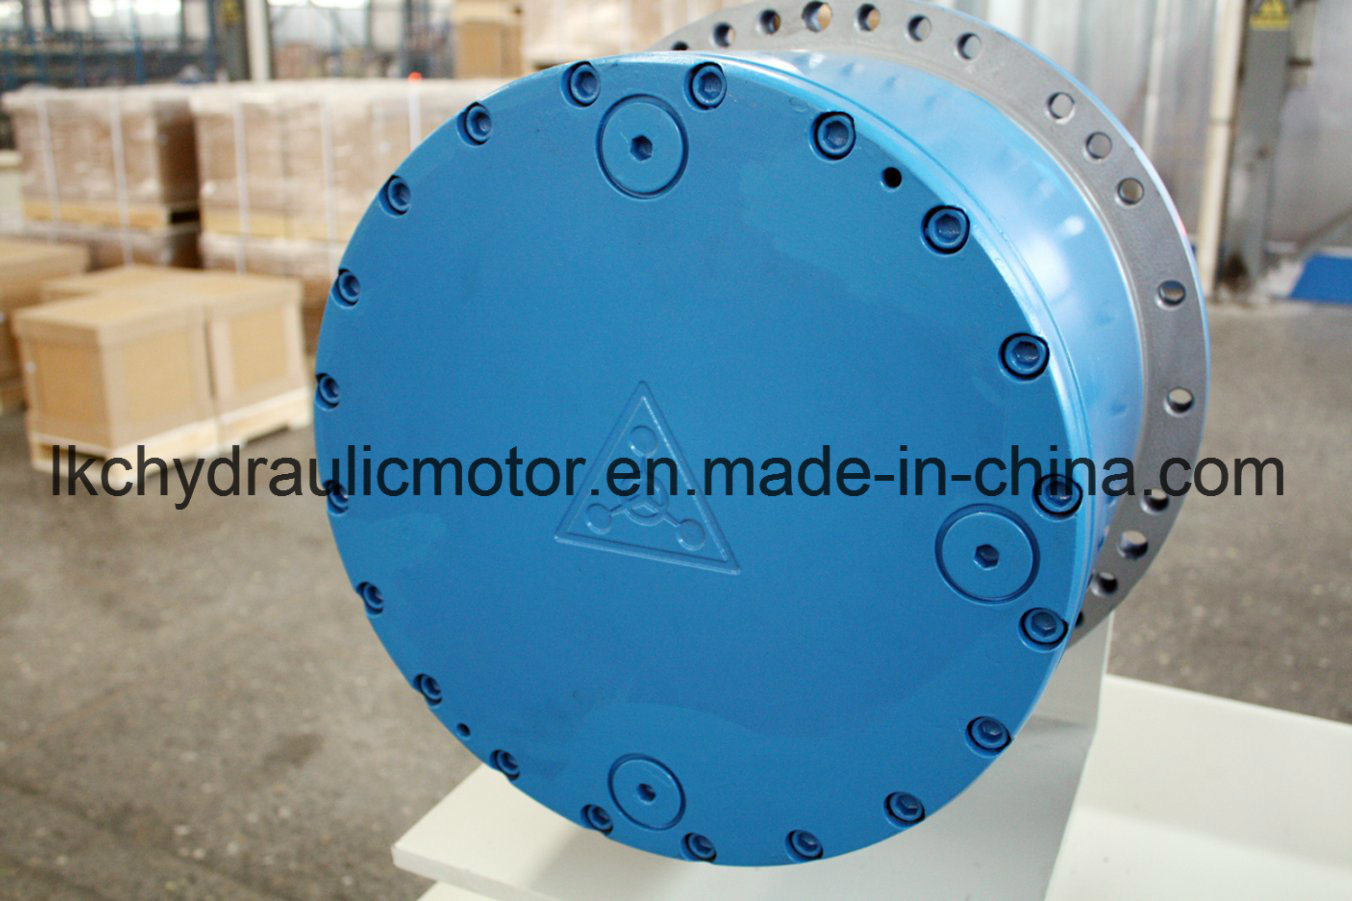 Digger Spare Parts for 7t~9t Komatsu, Kobelco, Caterpillar Crawler Machinery